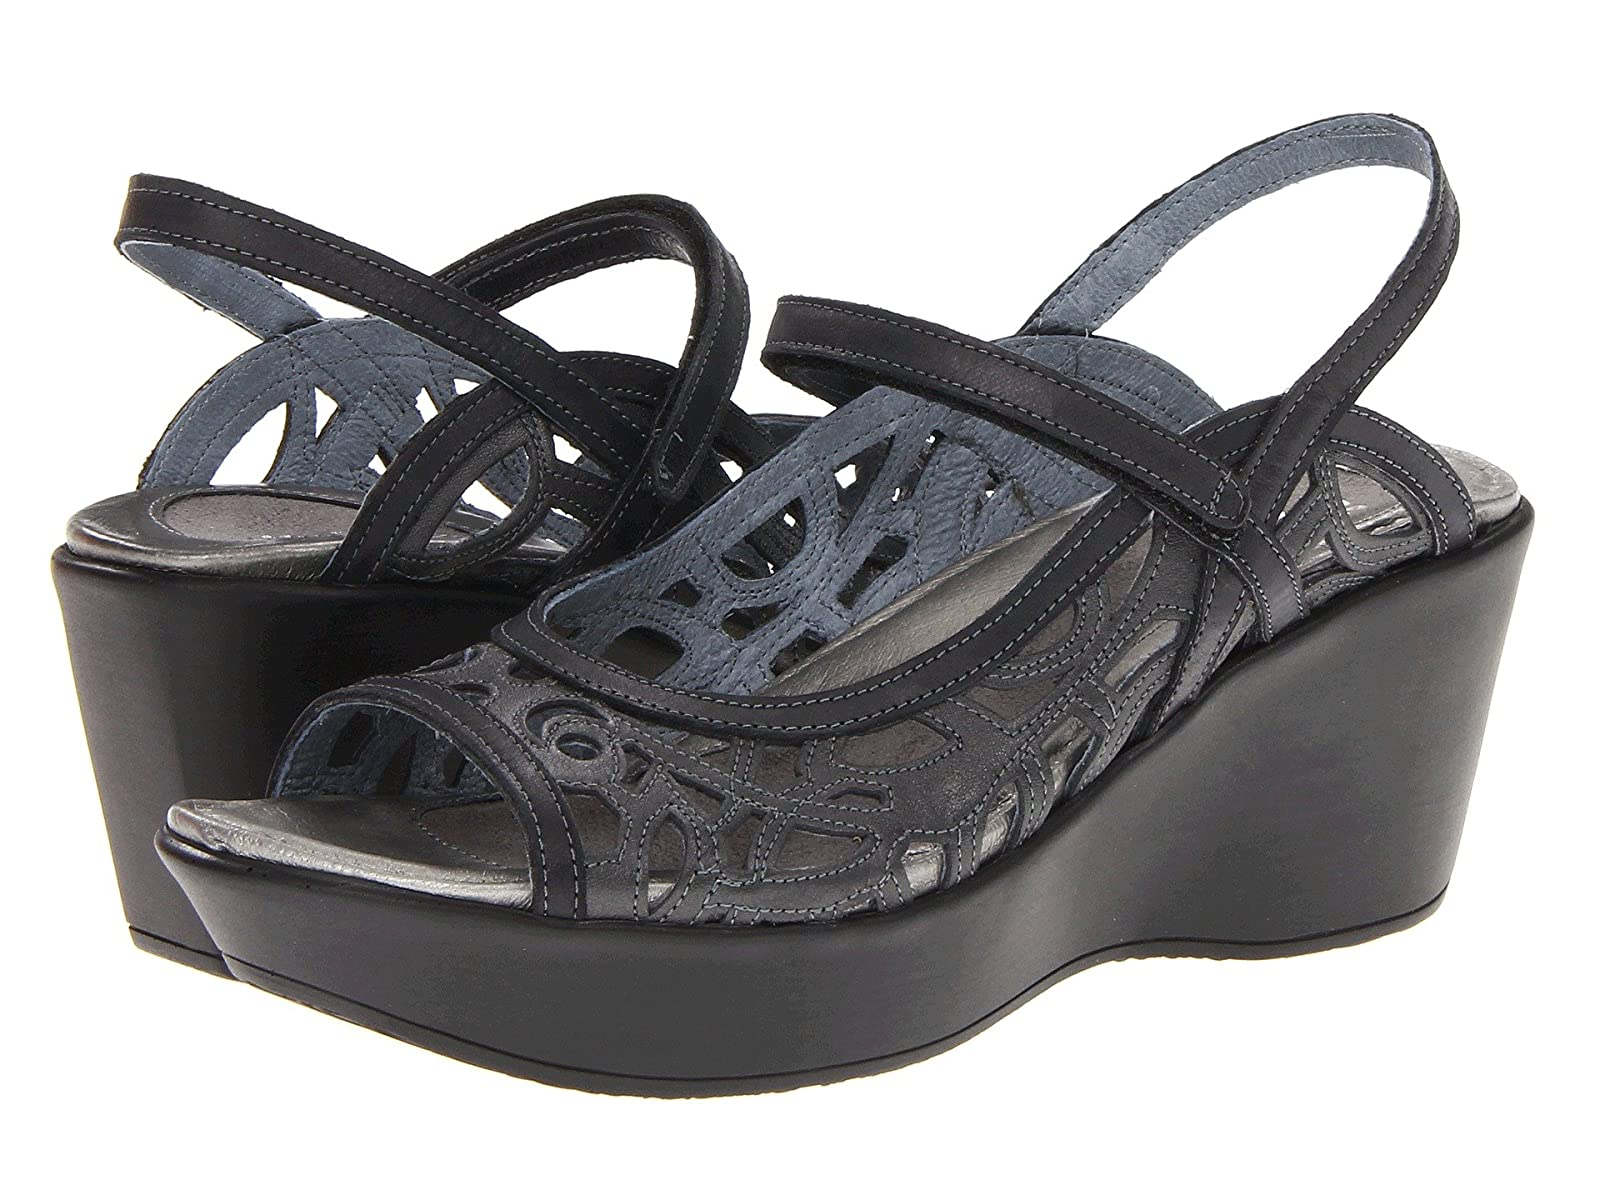 Naot DeluxeAtmospheric grades have affordable shoes